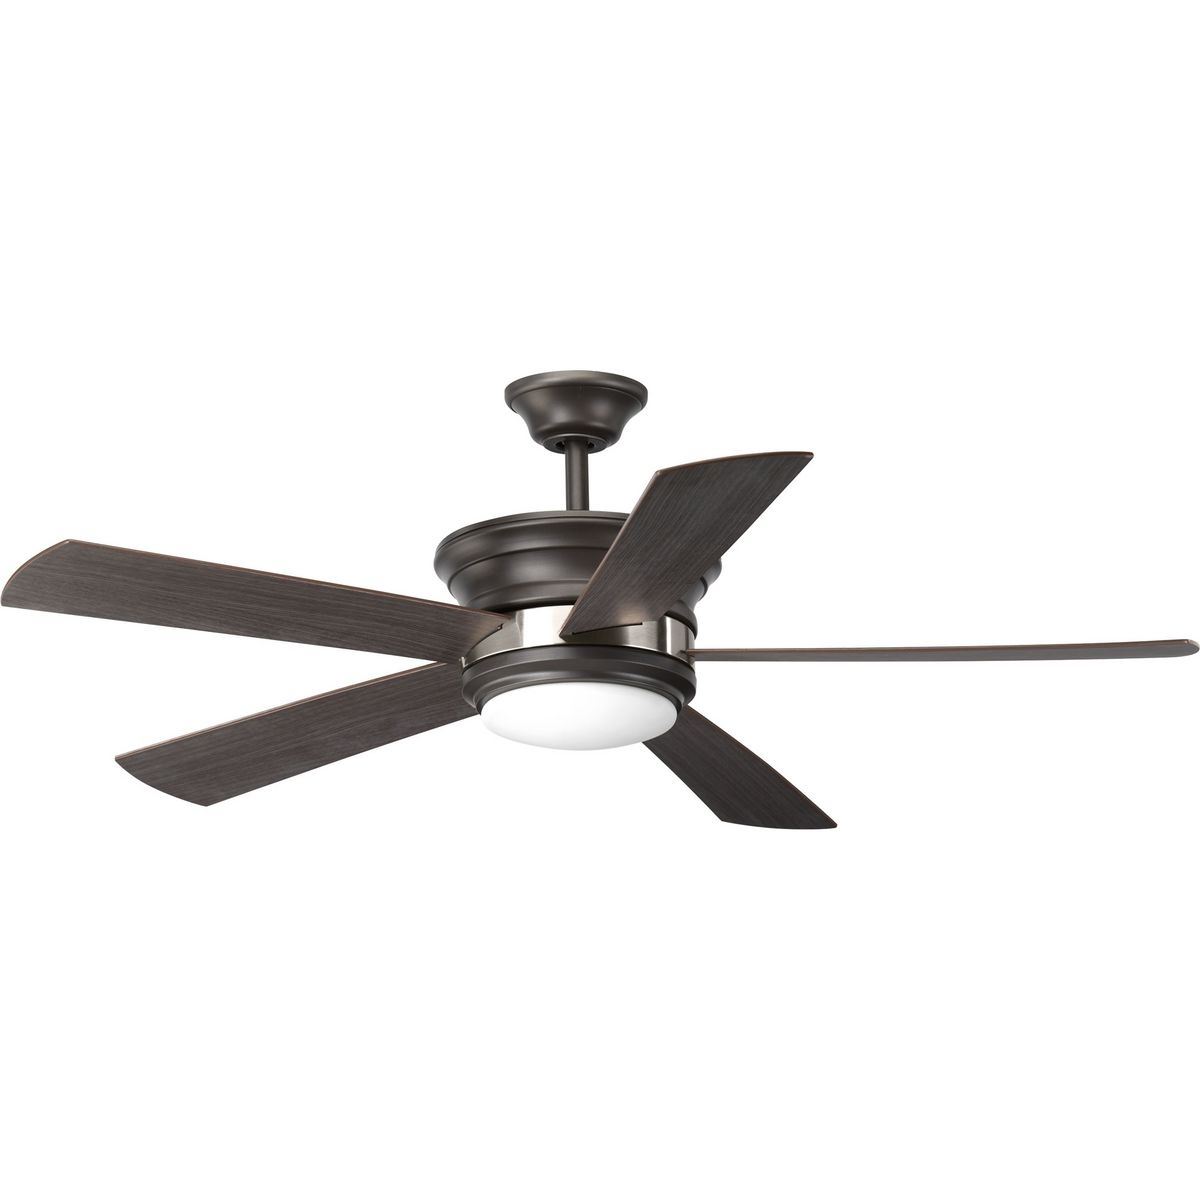 Trendy Outdoor Ceiling Fans For Canopy Inside P2540 14330k – Progress Lighting (View 19 of 20)